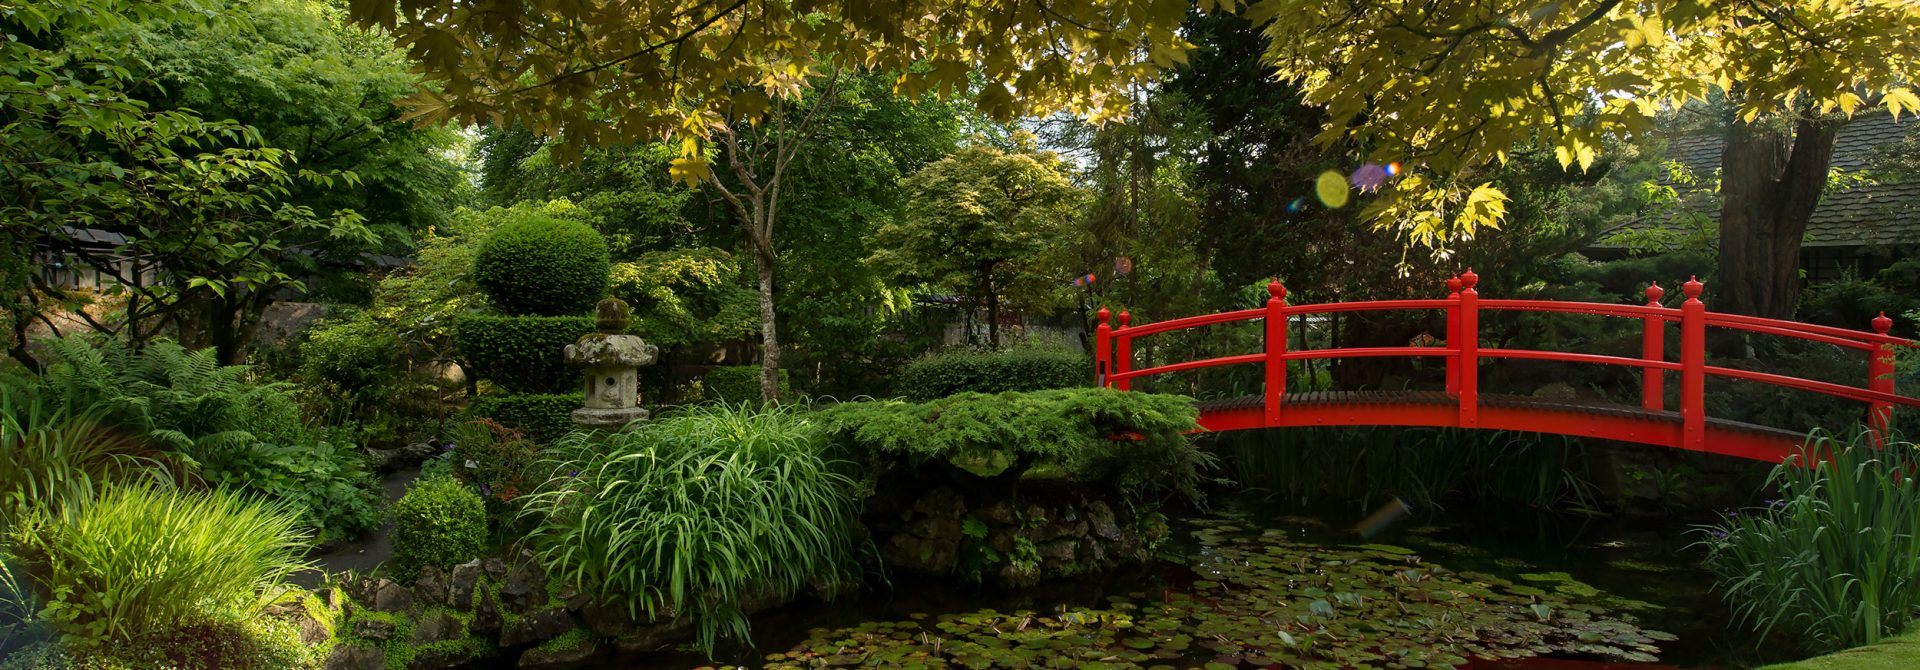 THE ICONIC JAPANESE GARDENS AT THE IRISH NATIONAL STUD Part 49